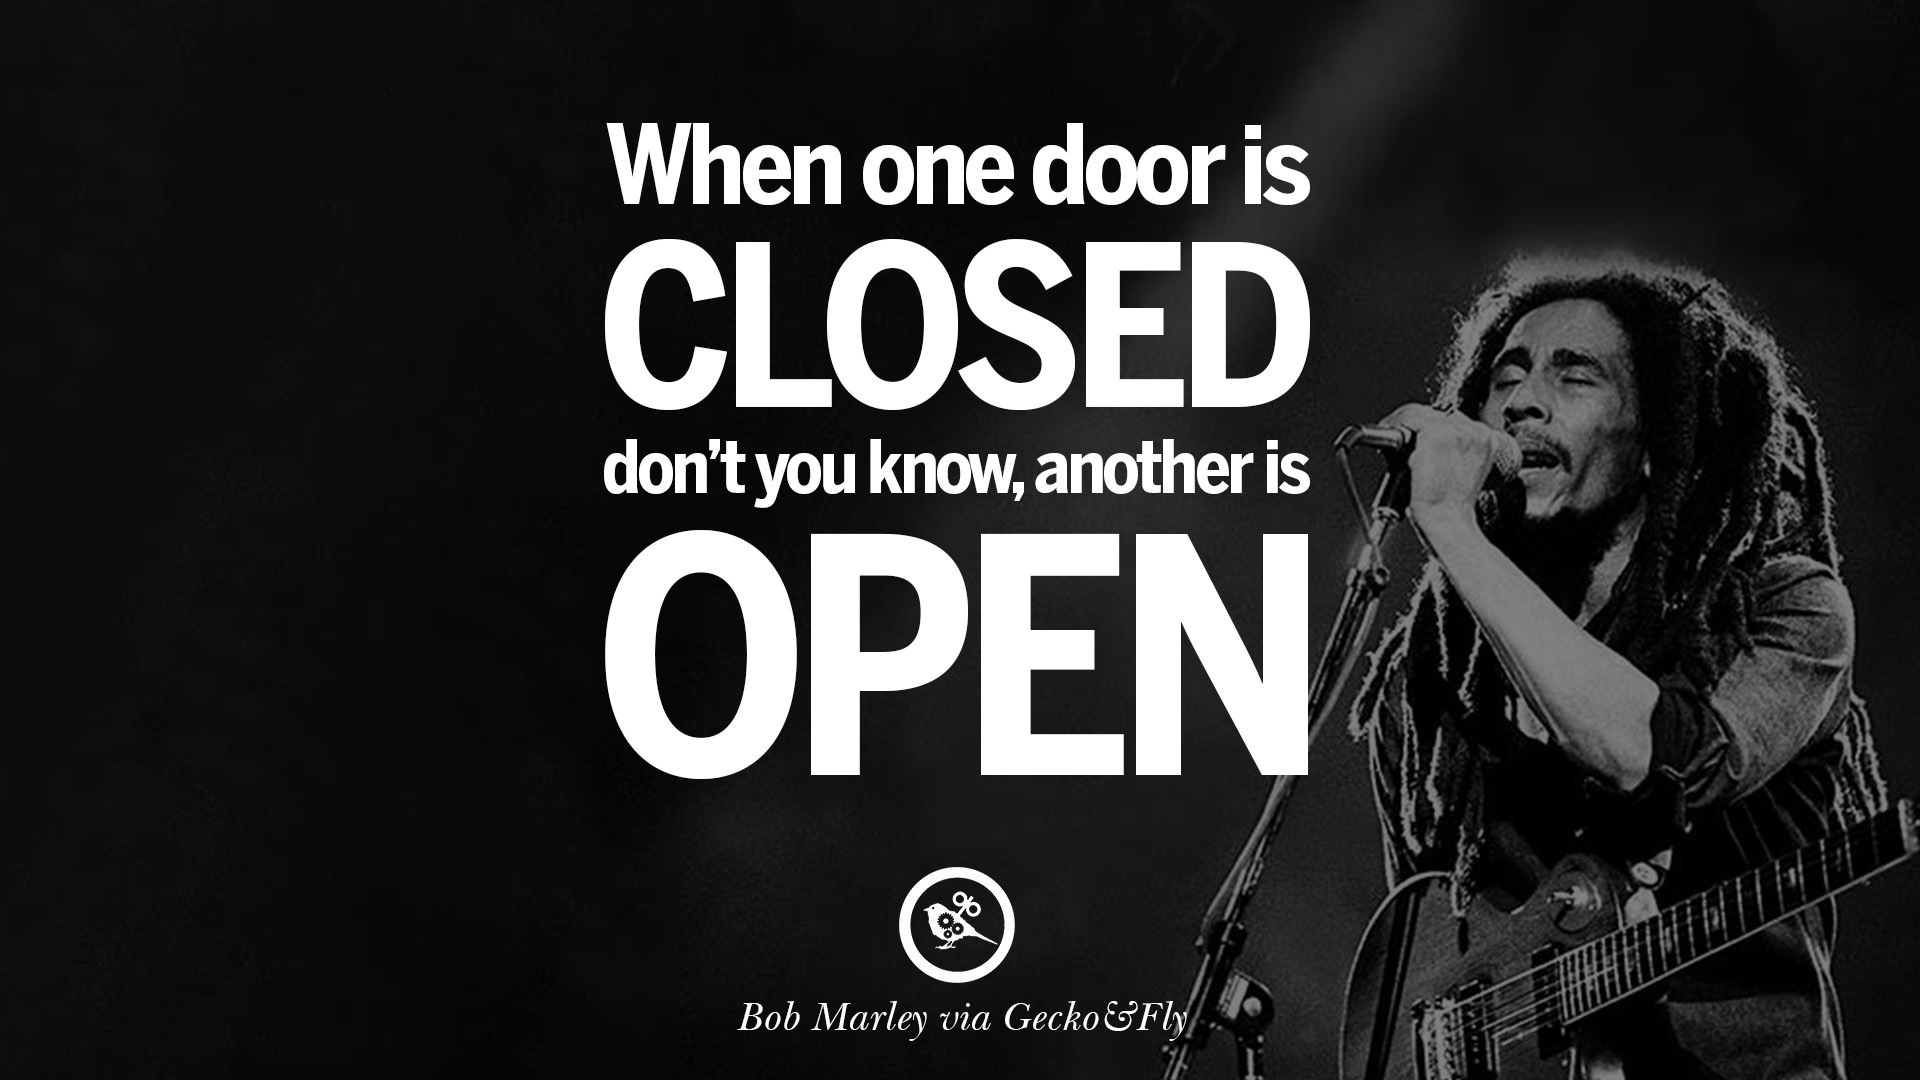 Quotes About One Door Closing And Another Opening: 10 Bob Marley Quotes And Frases On Marijuana, Mentality